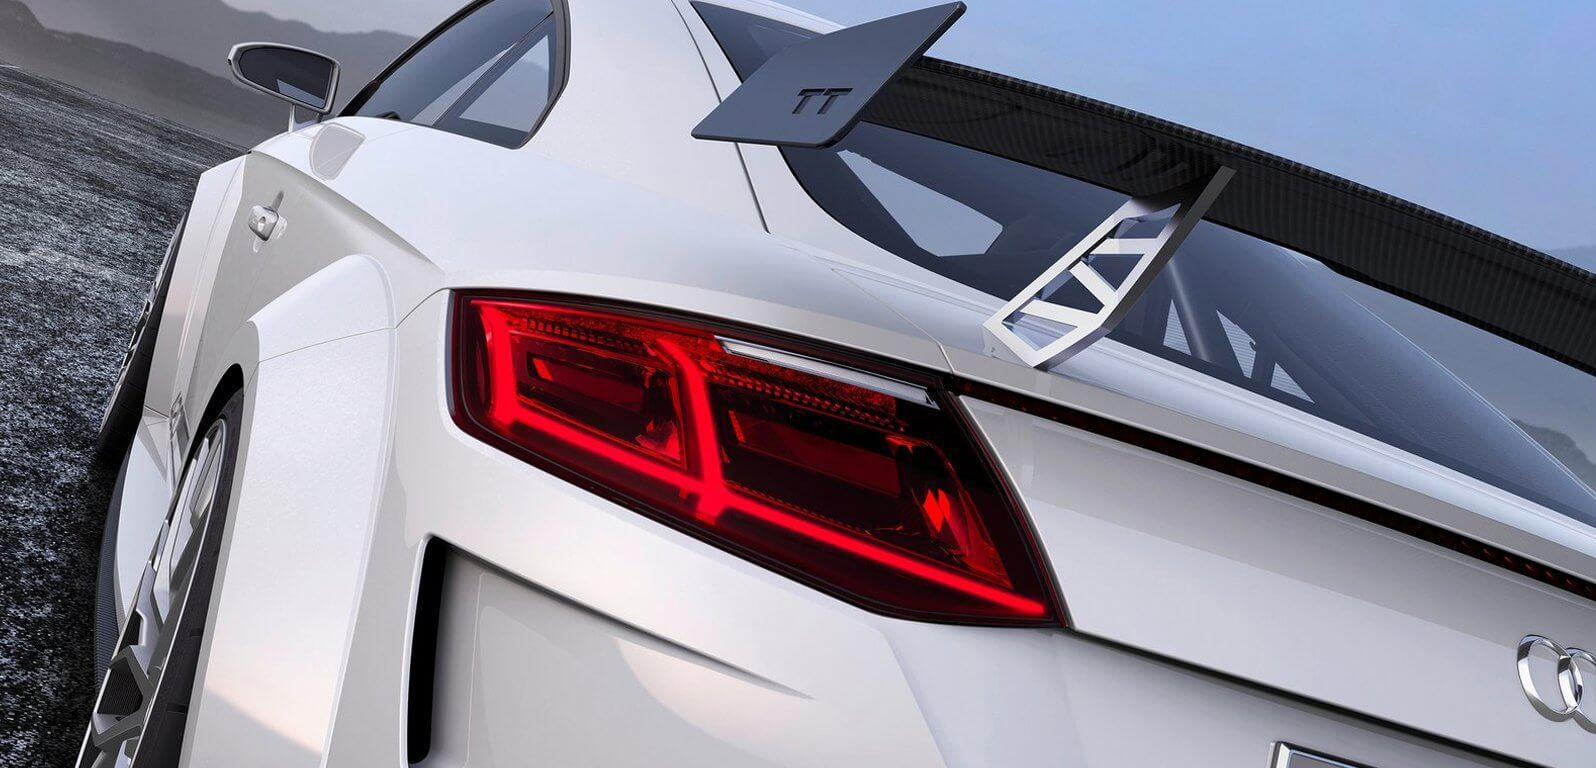 Audi TT Quattro Sport rearview Showcar Creative Wave